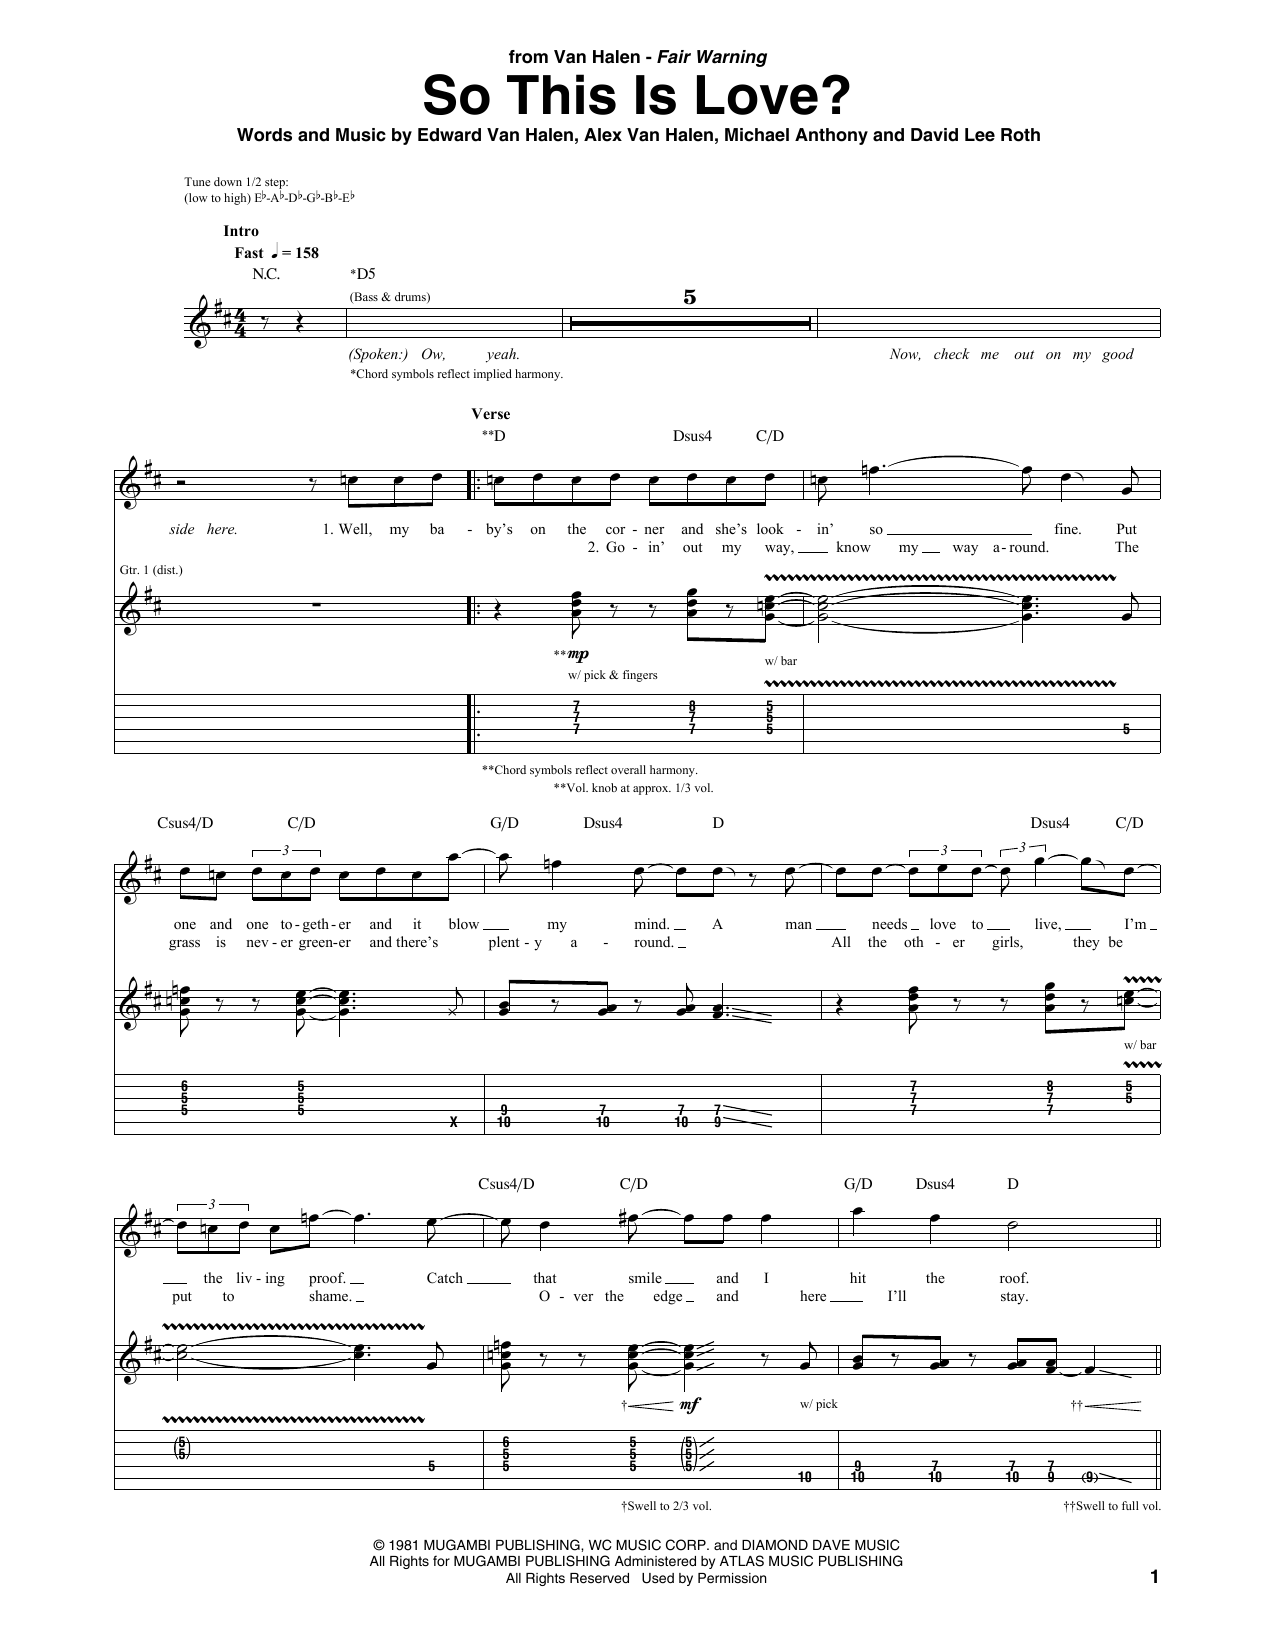 So This Is Love? Sheet Music